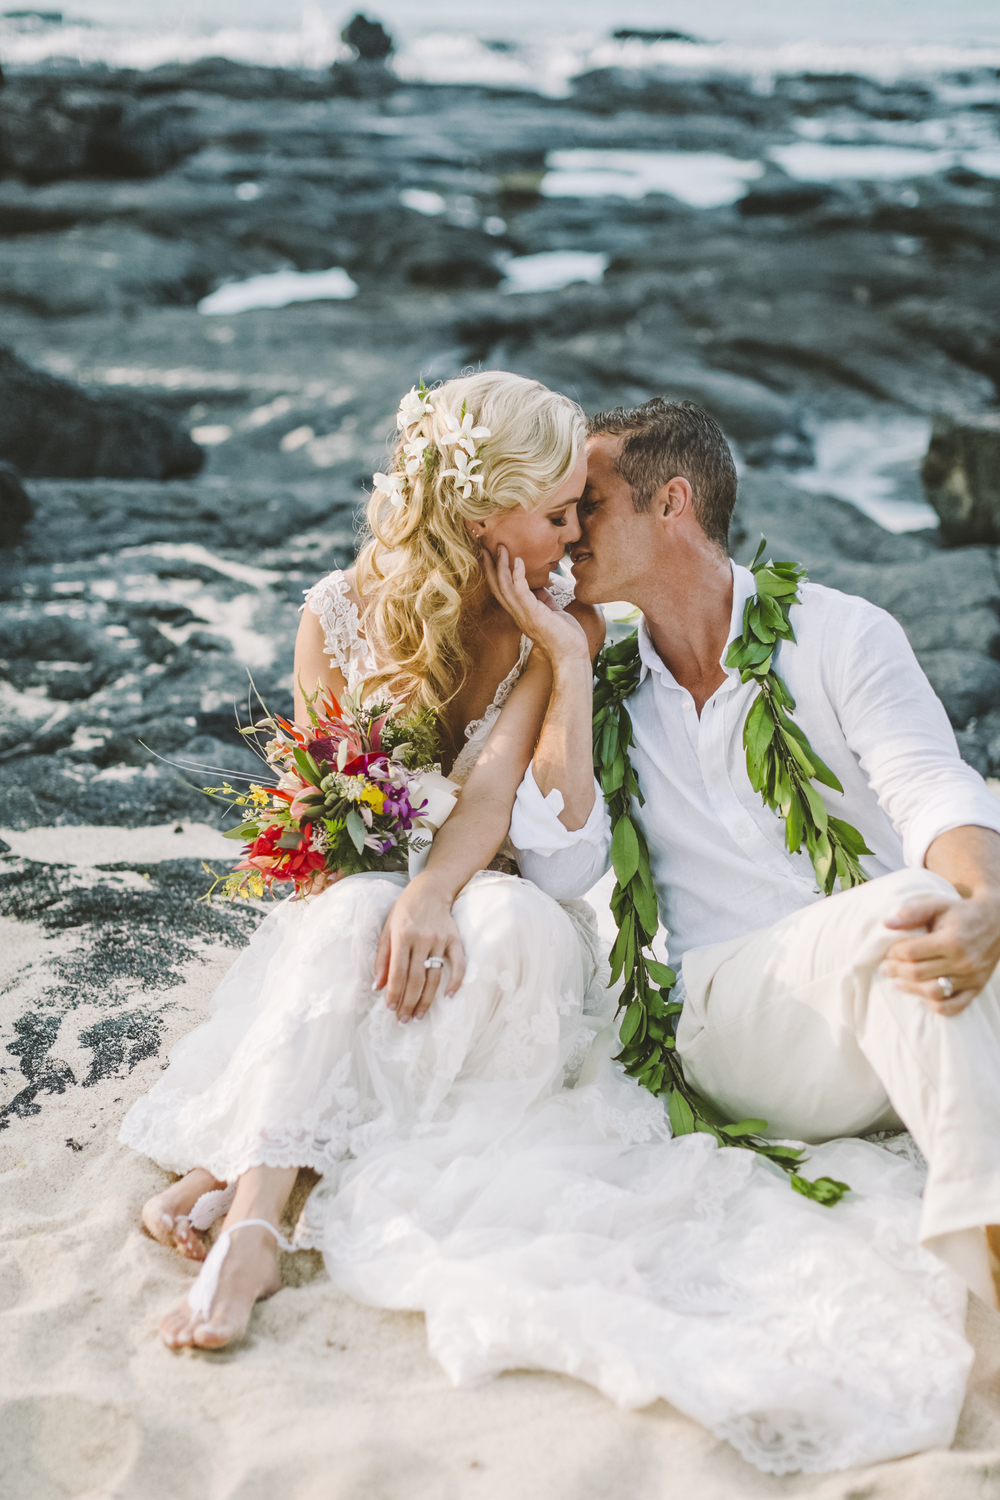 angie-diaz-photography-hawaii-wedding-photographer-kelli-jay-95.jpg